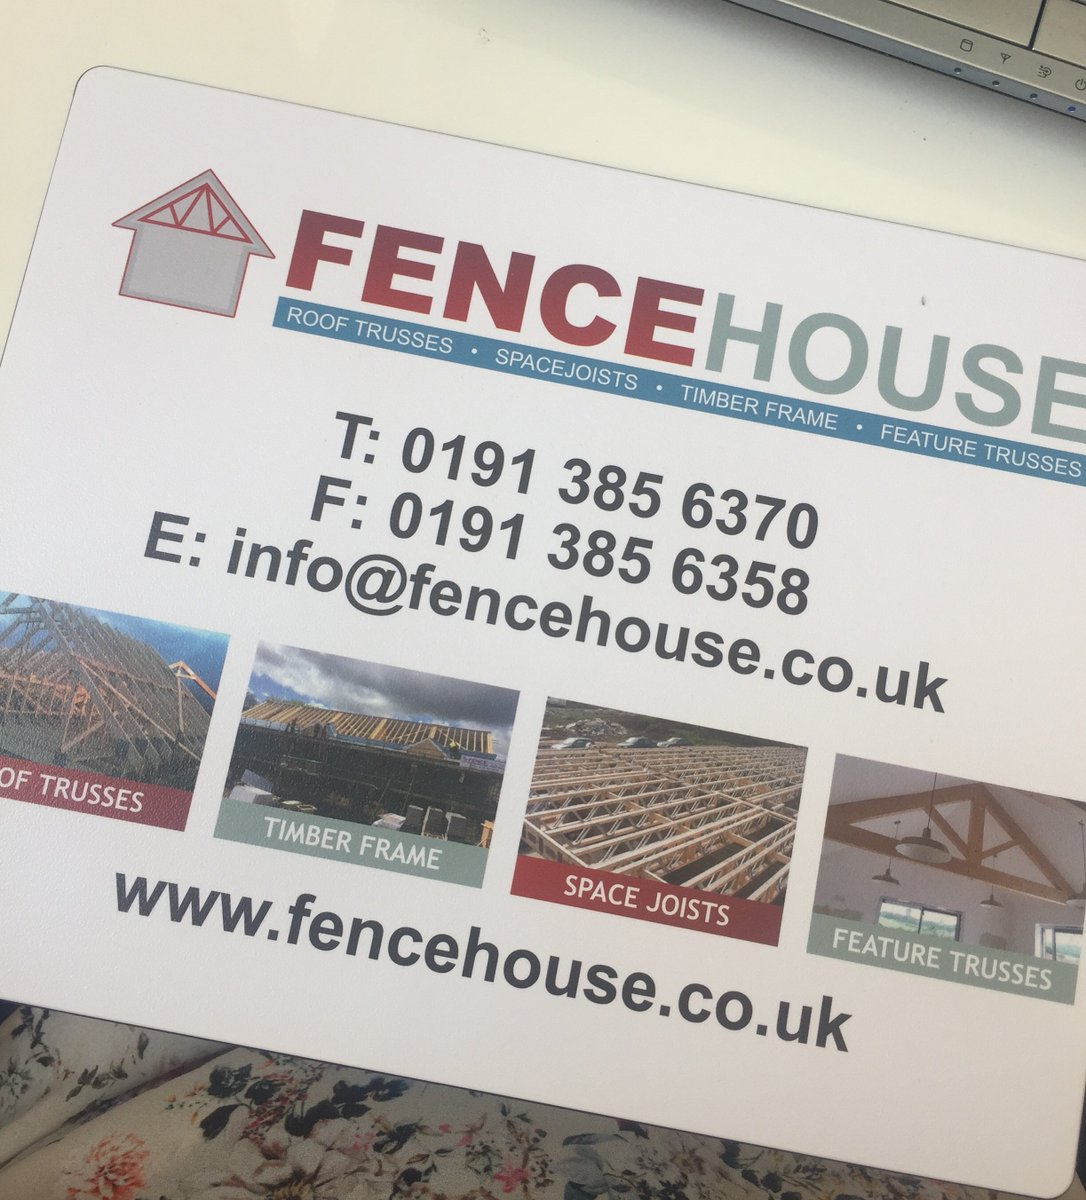 Fencehouse on Twitter: